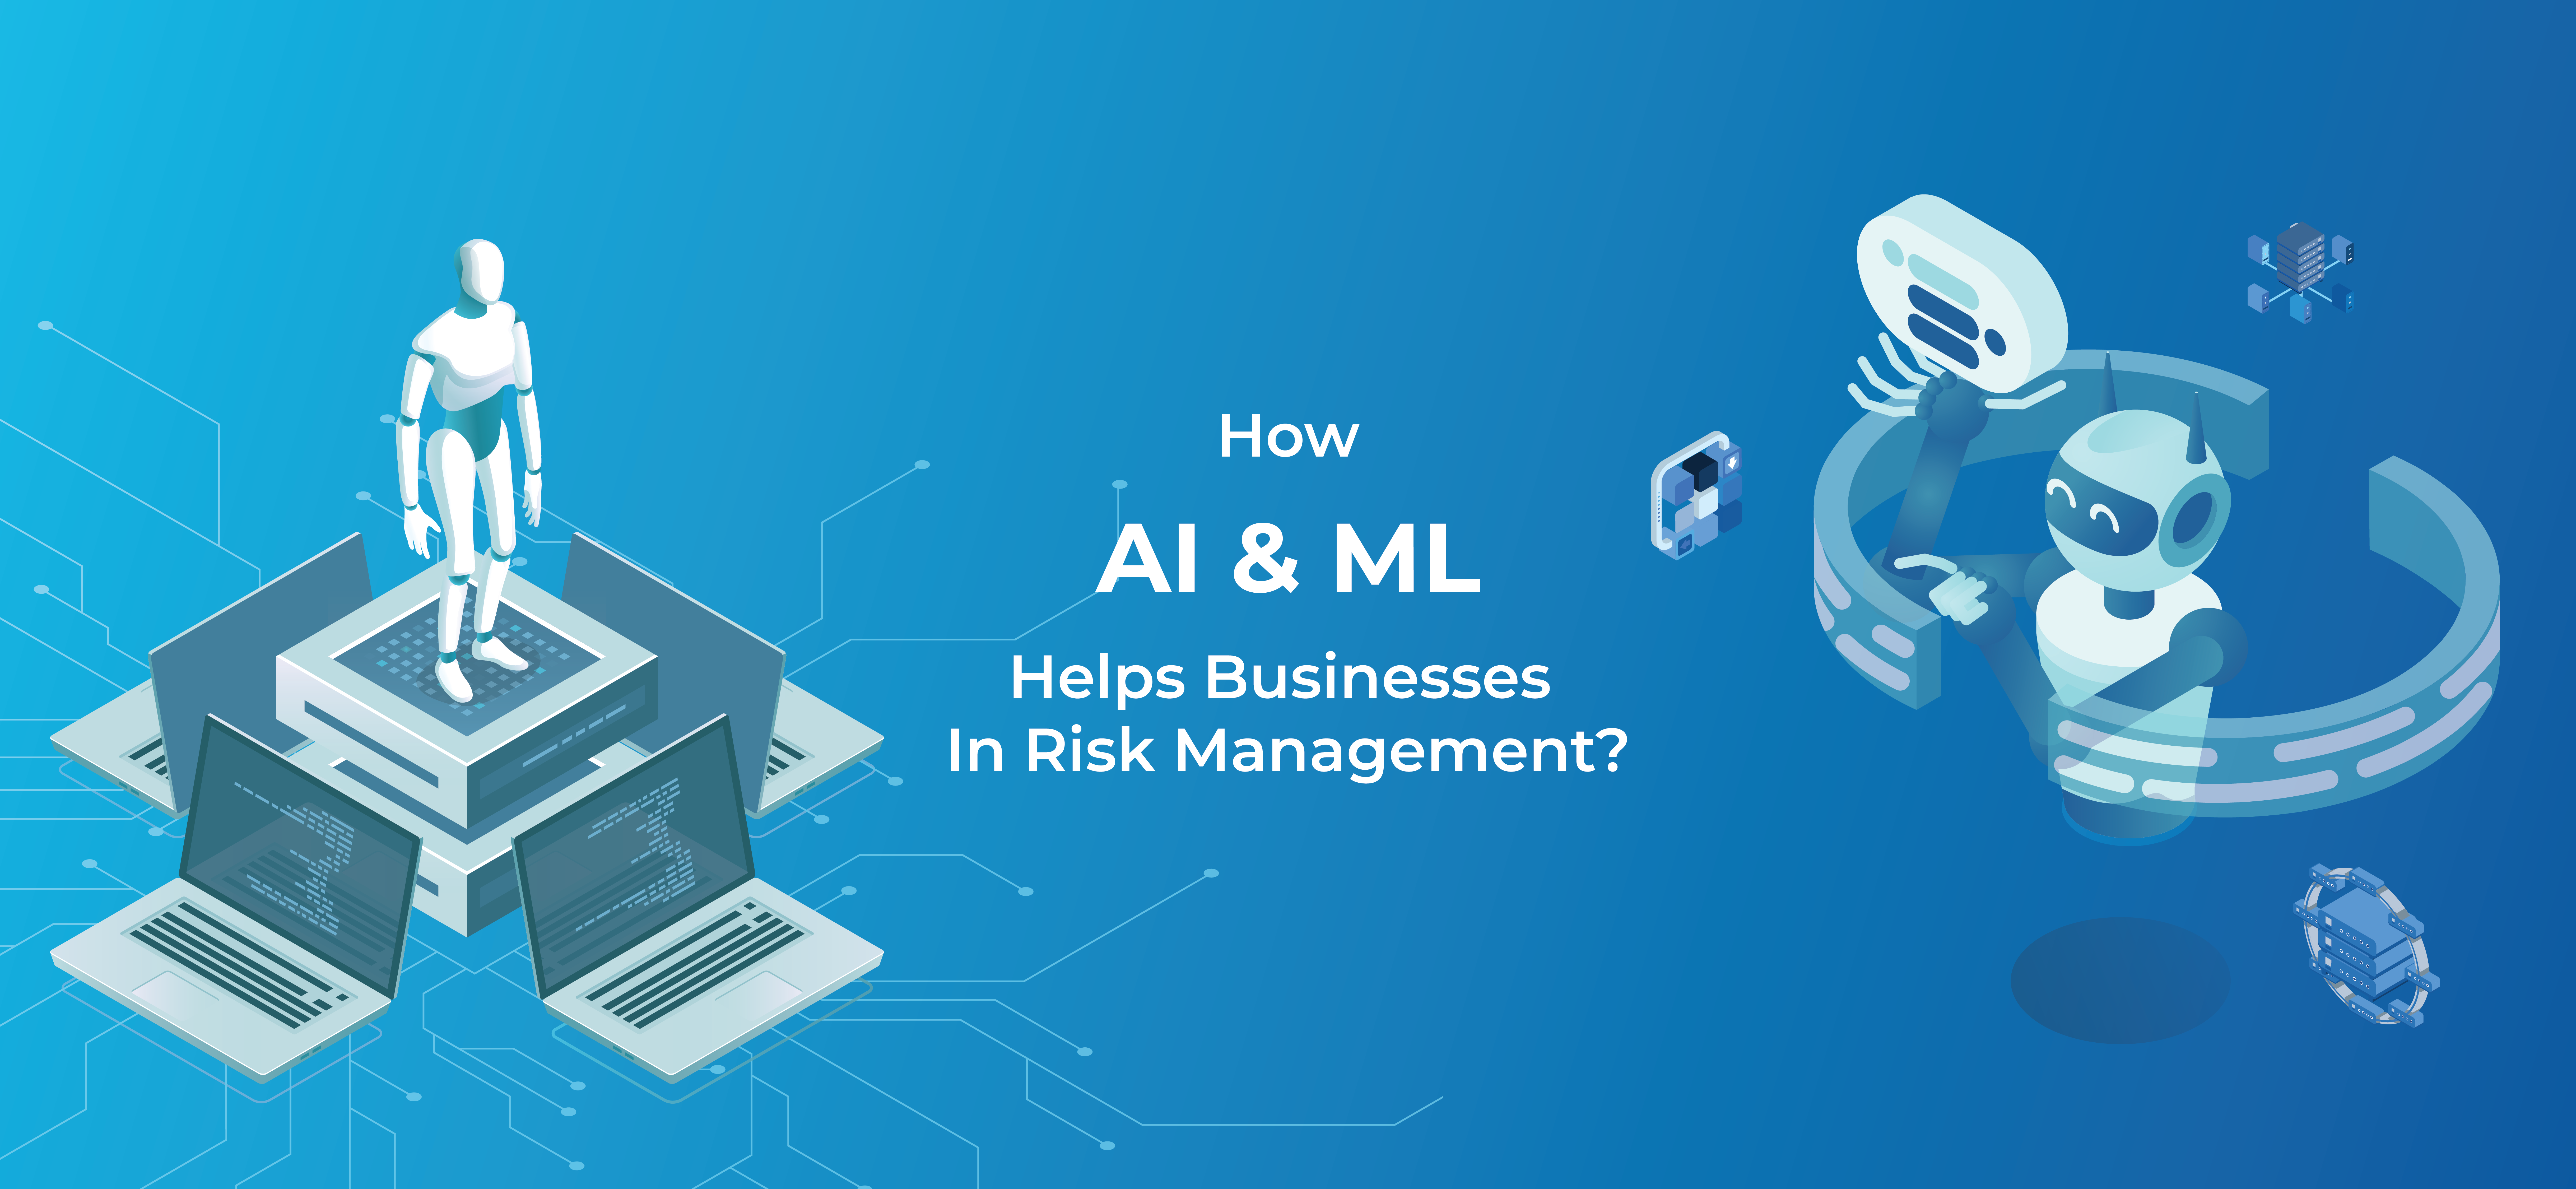 AI & ML and business risk management